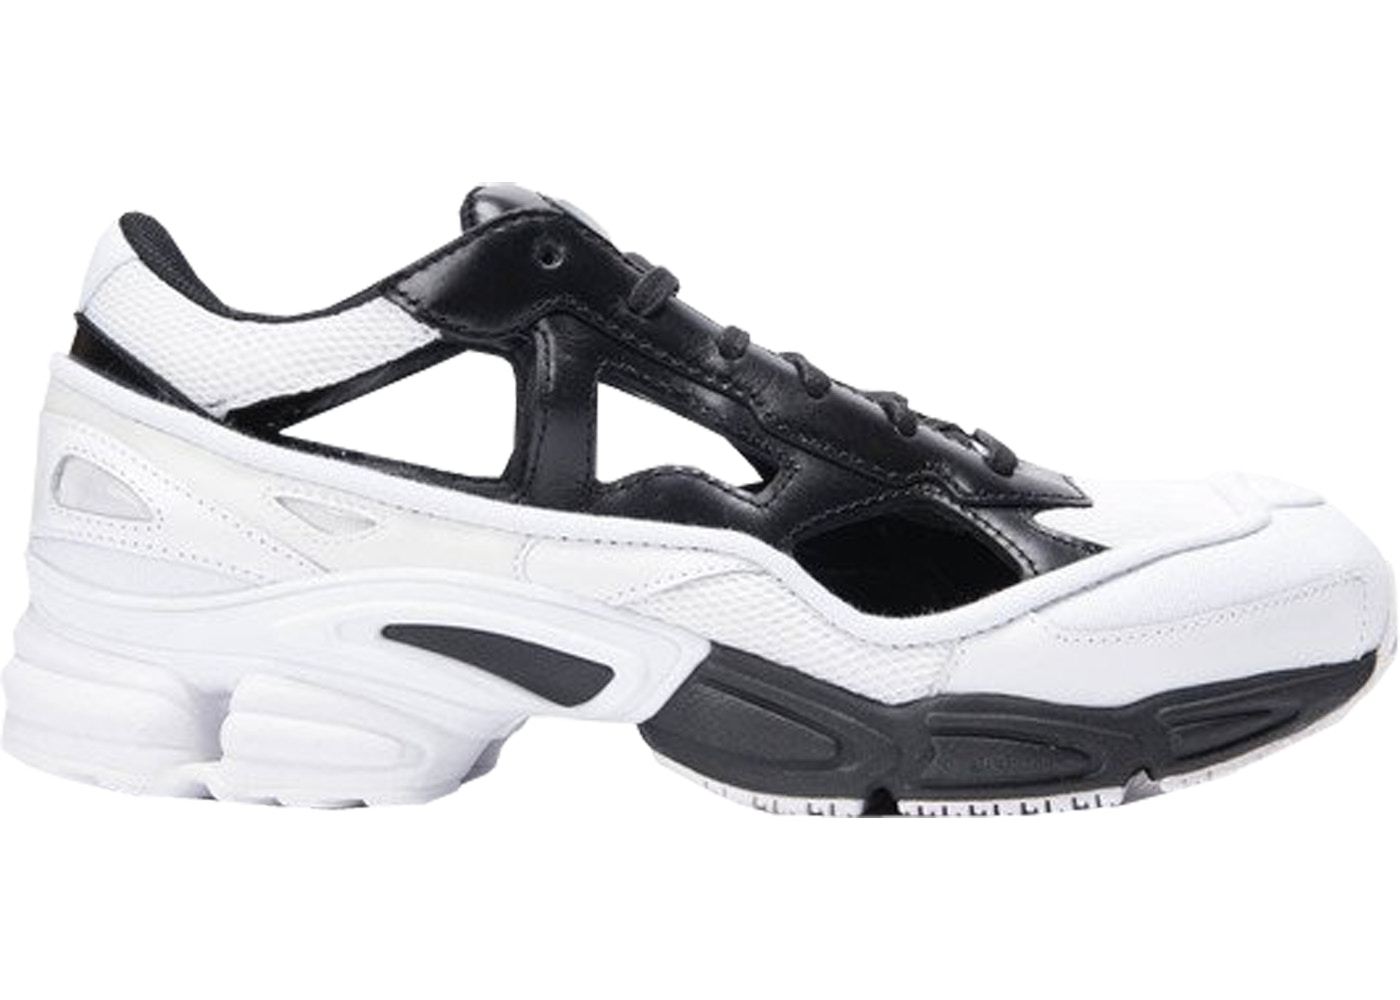 best sneakers 4026a 01c41 adidas RS Replicant Ozweego Raf Simons Black Cream (Special Edition with  Socks)